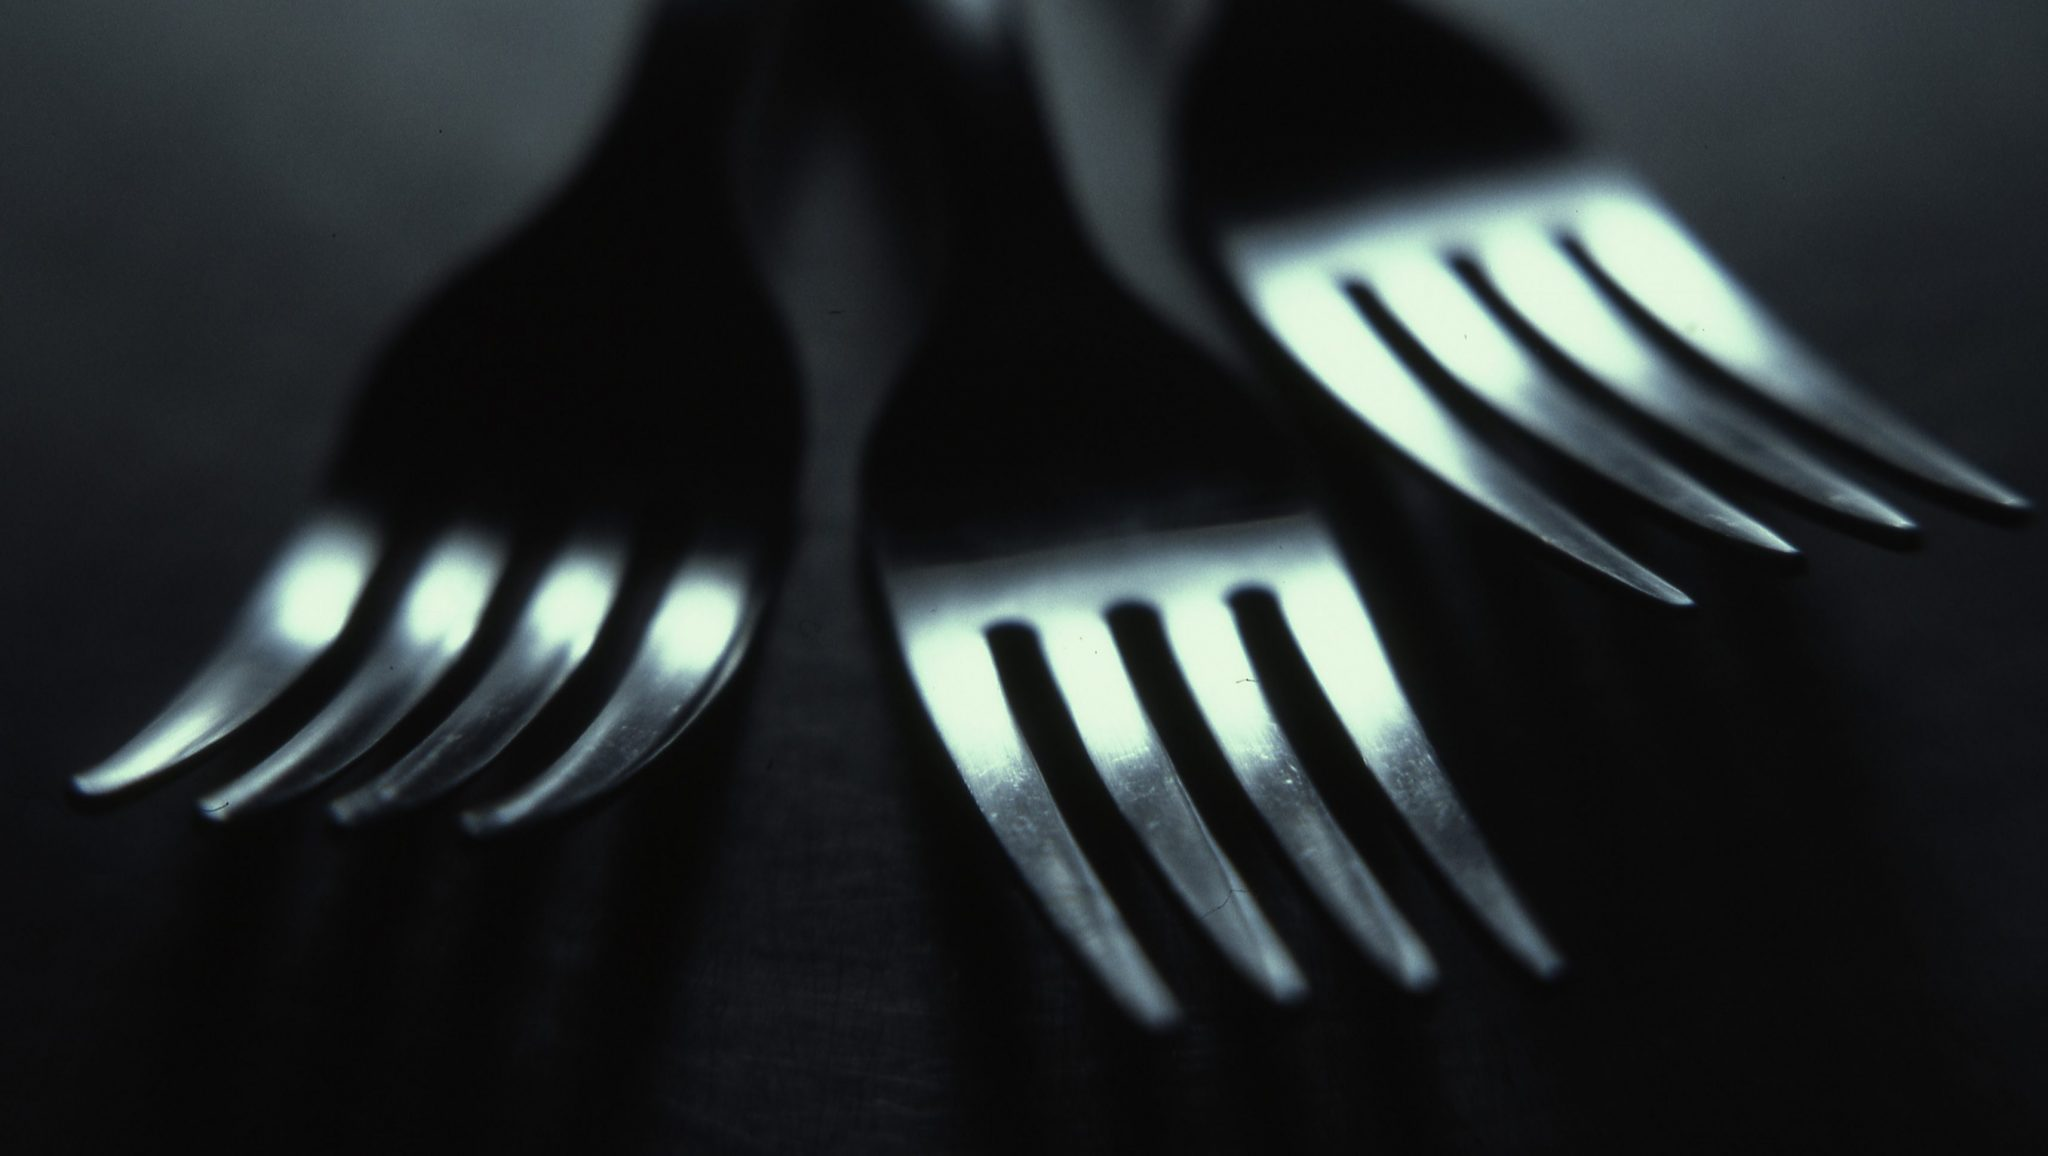 cutlery on table